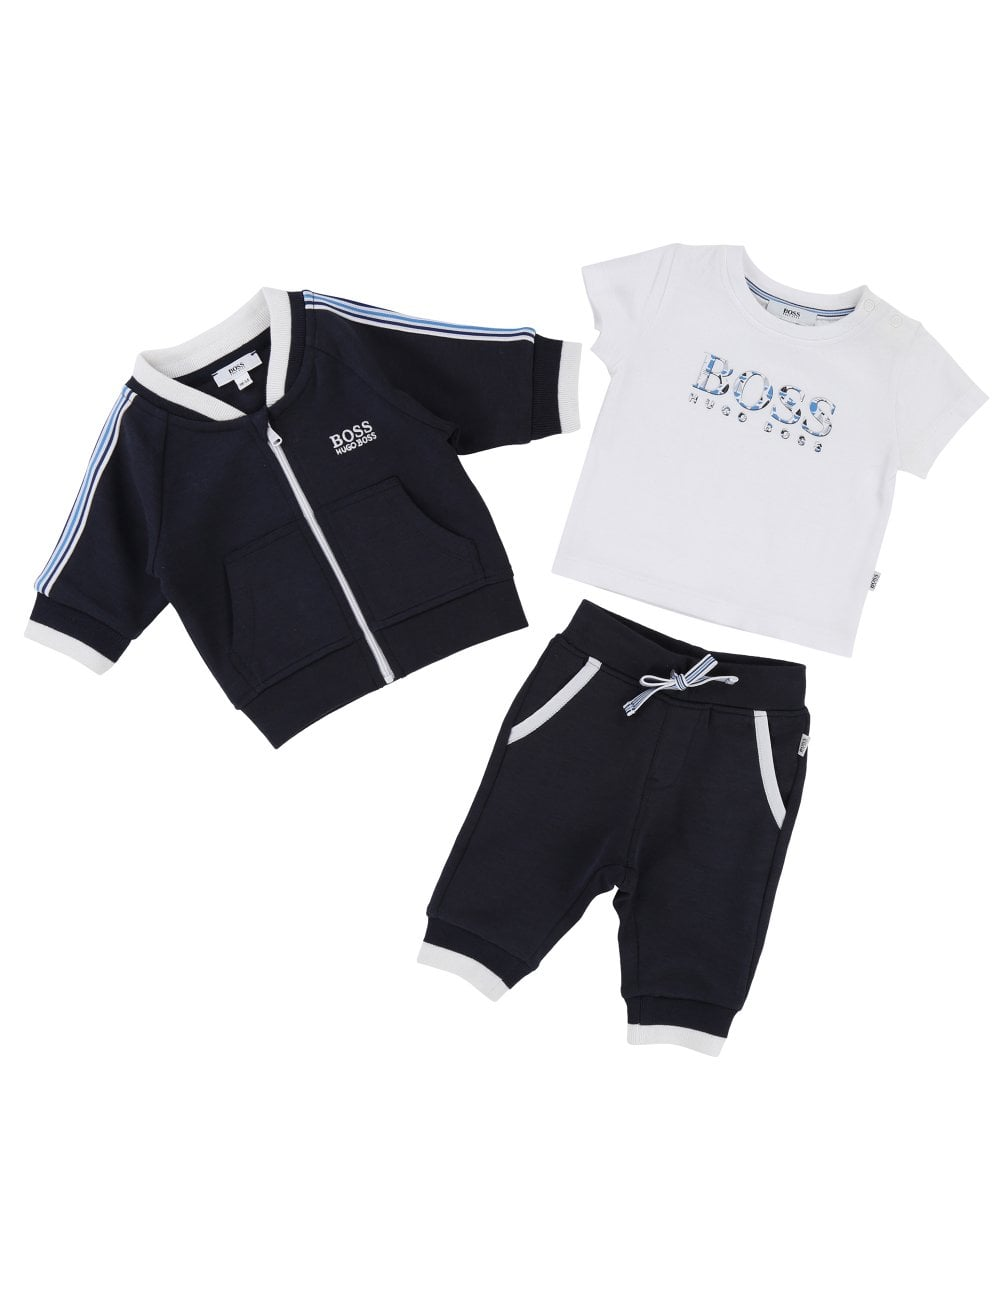 cec868863 Hugo Boss Kids Baby Boys Tracksuit Outfit